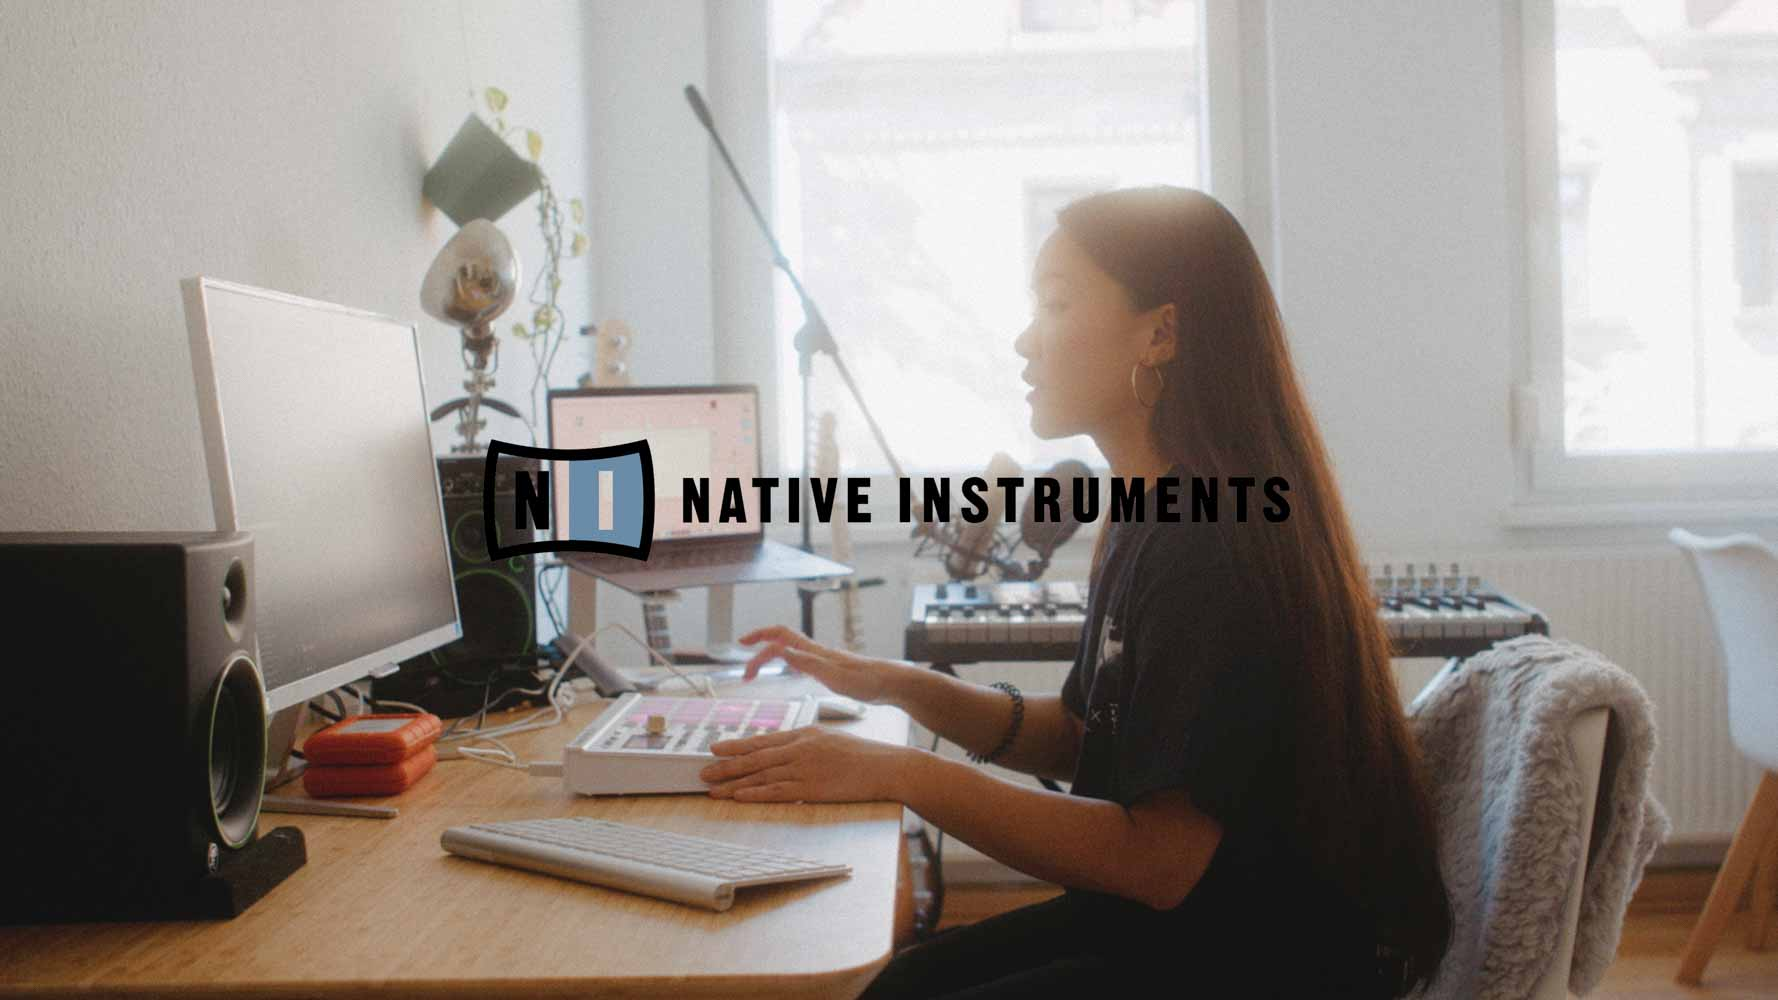 Native Instruments saltyyy v Maschine tutorial